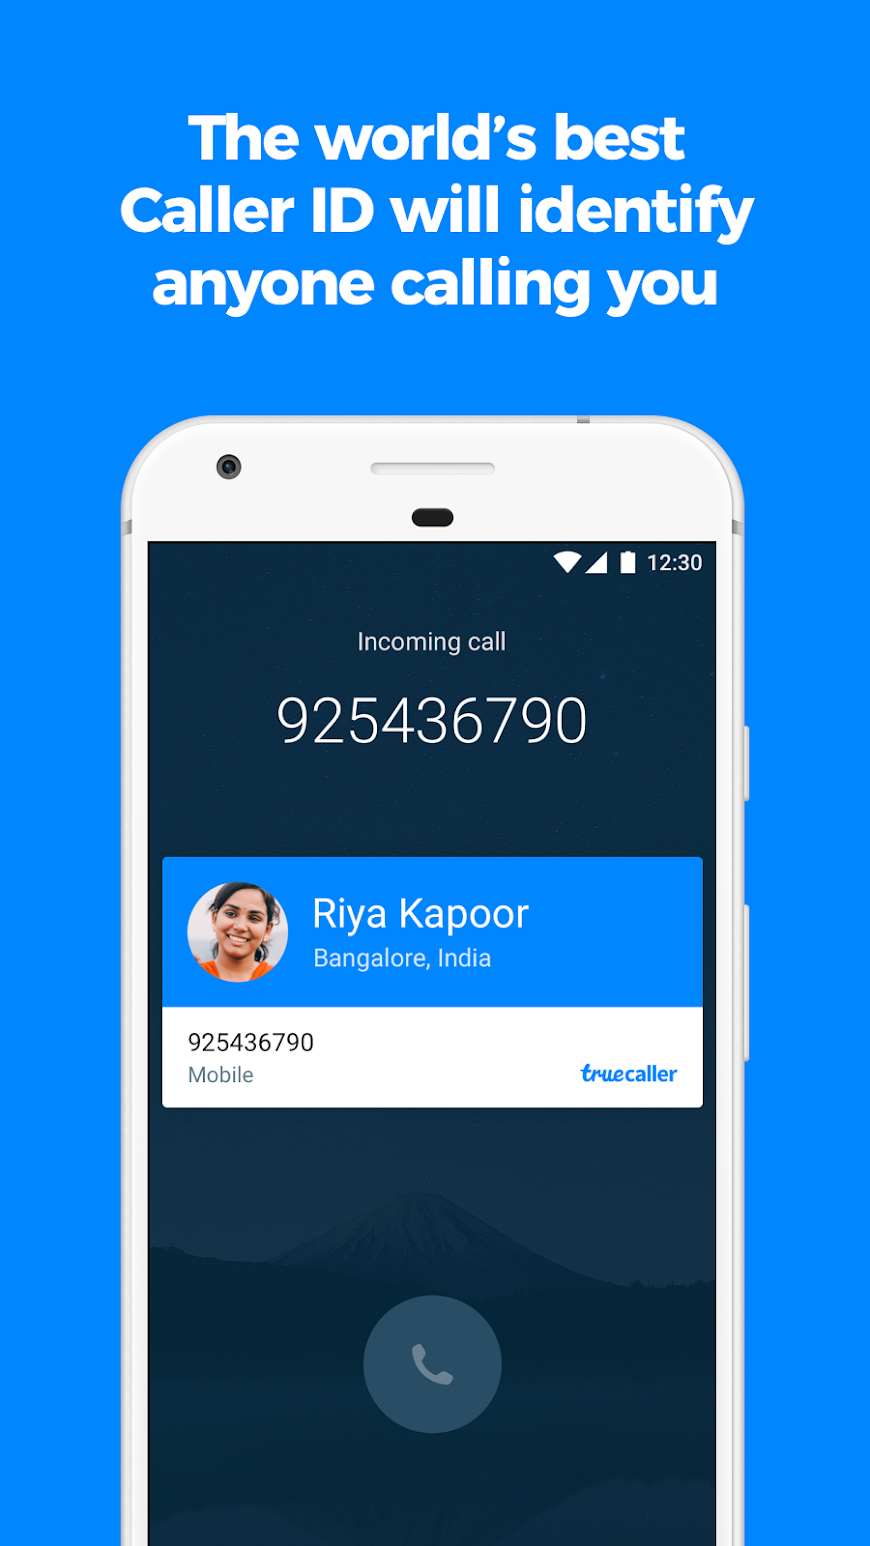 Whether you're on Android or iOS, Truecaller is an app you